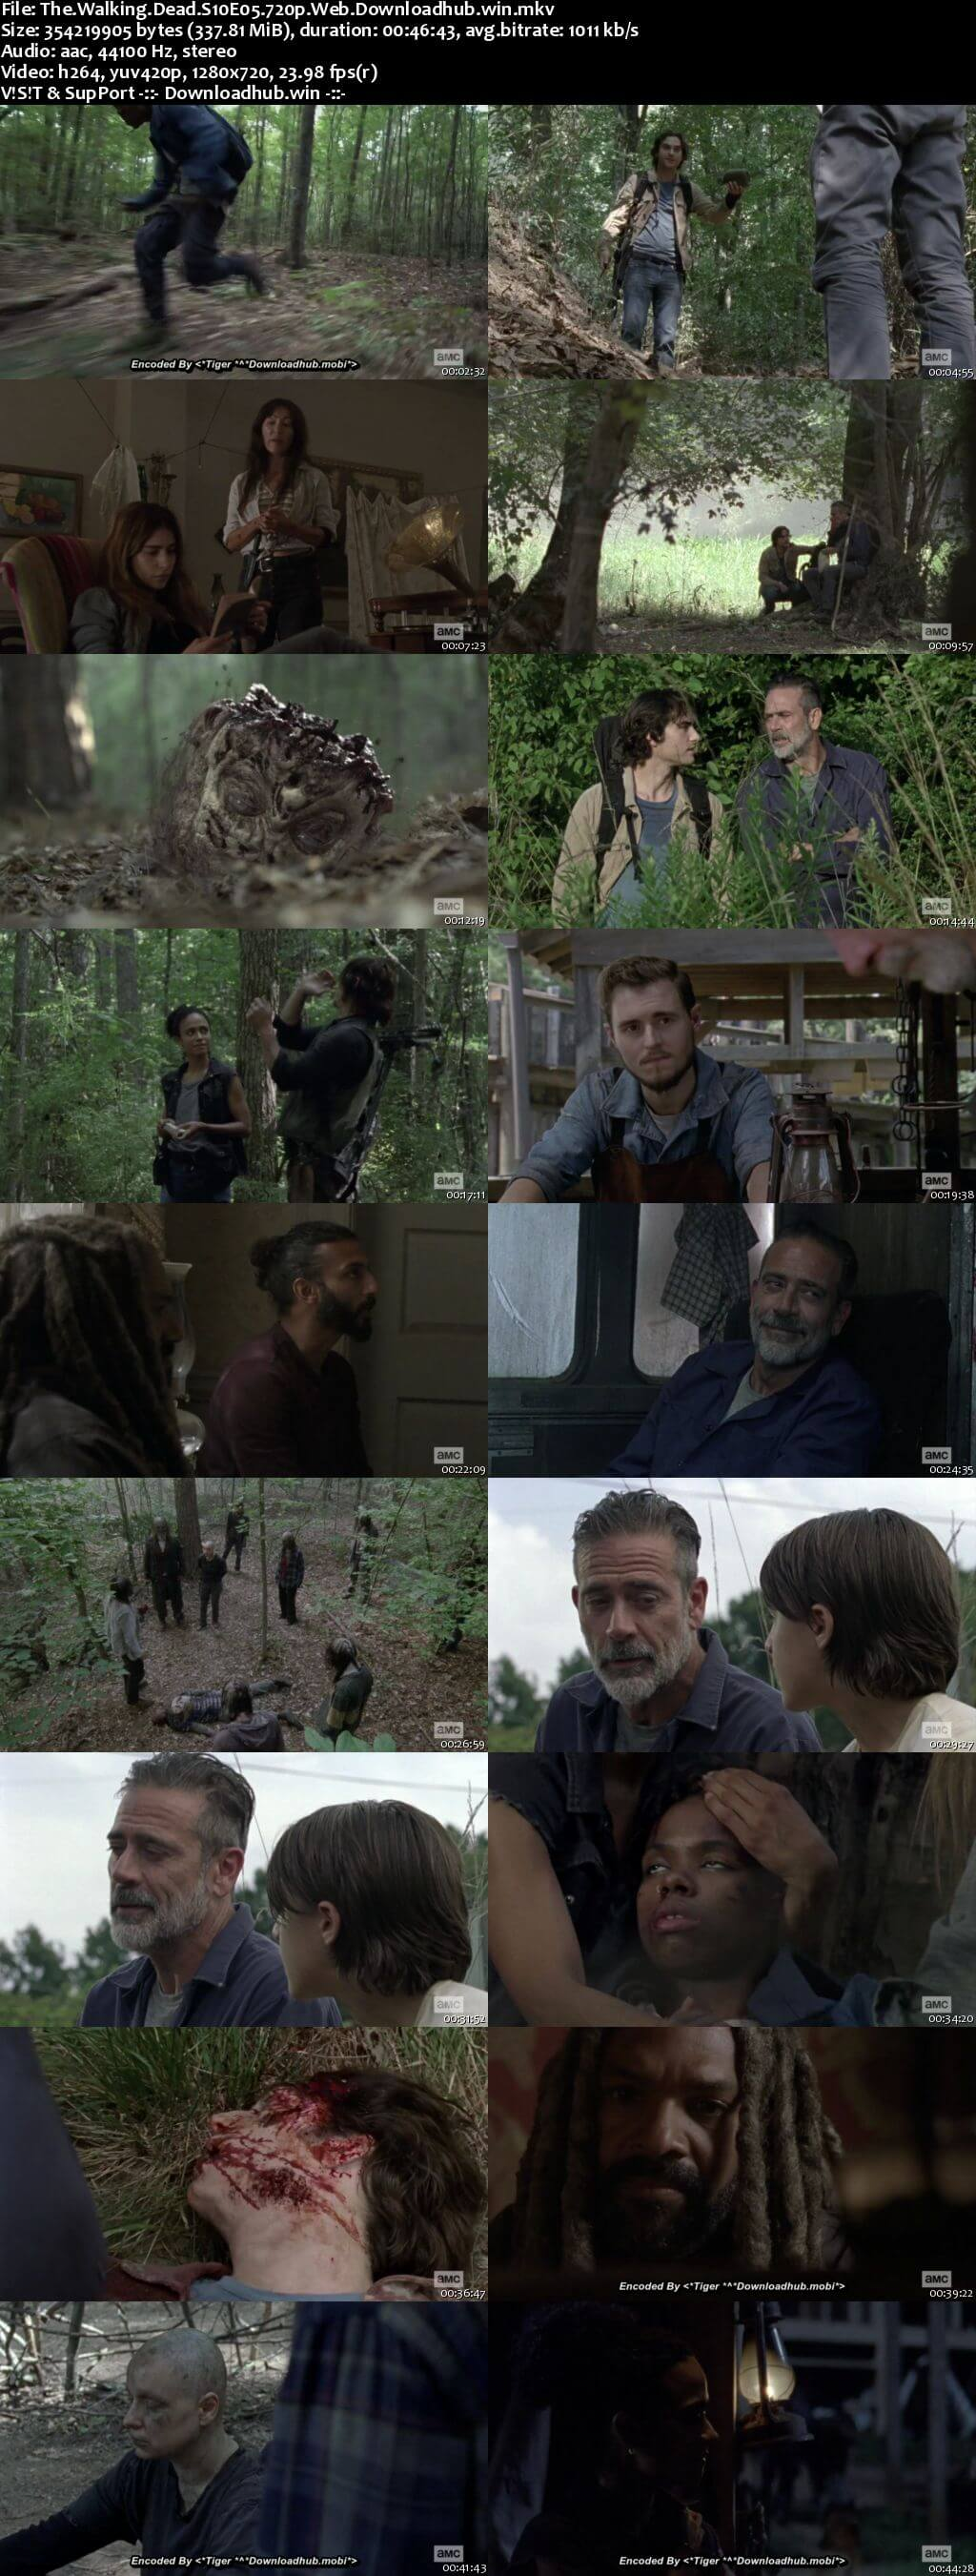 The Walking Dead S10E05 300MB WEB-DL 720p x264